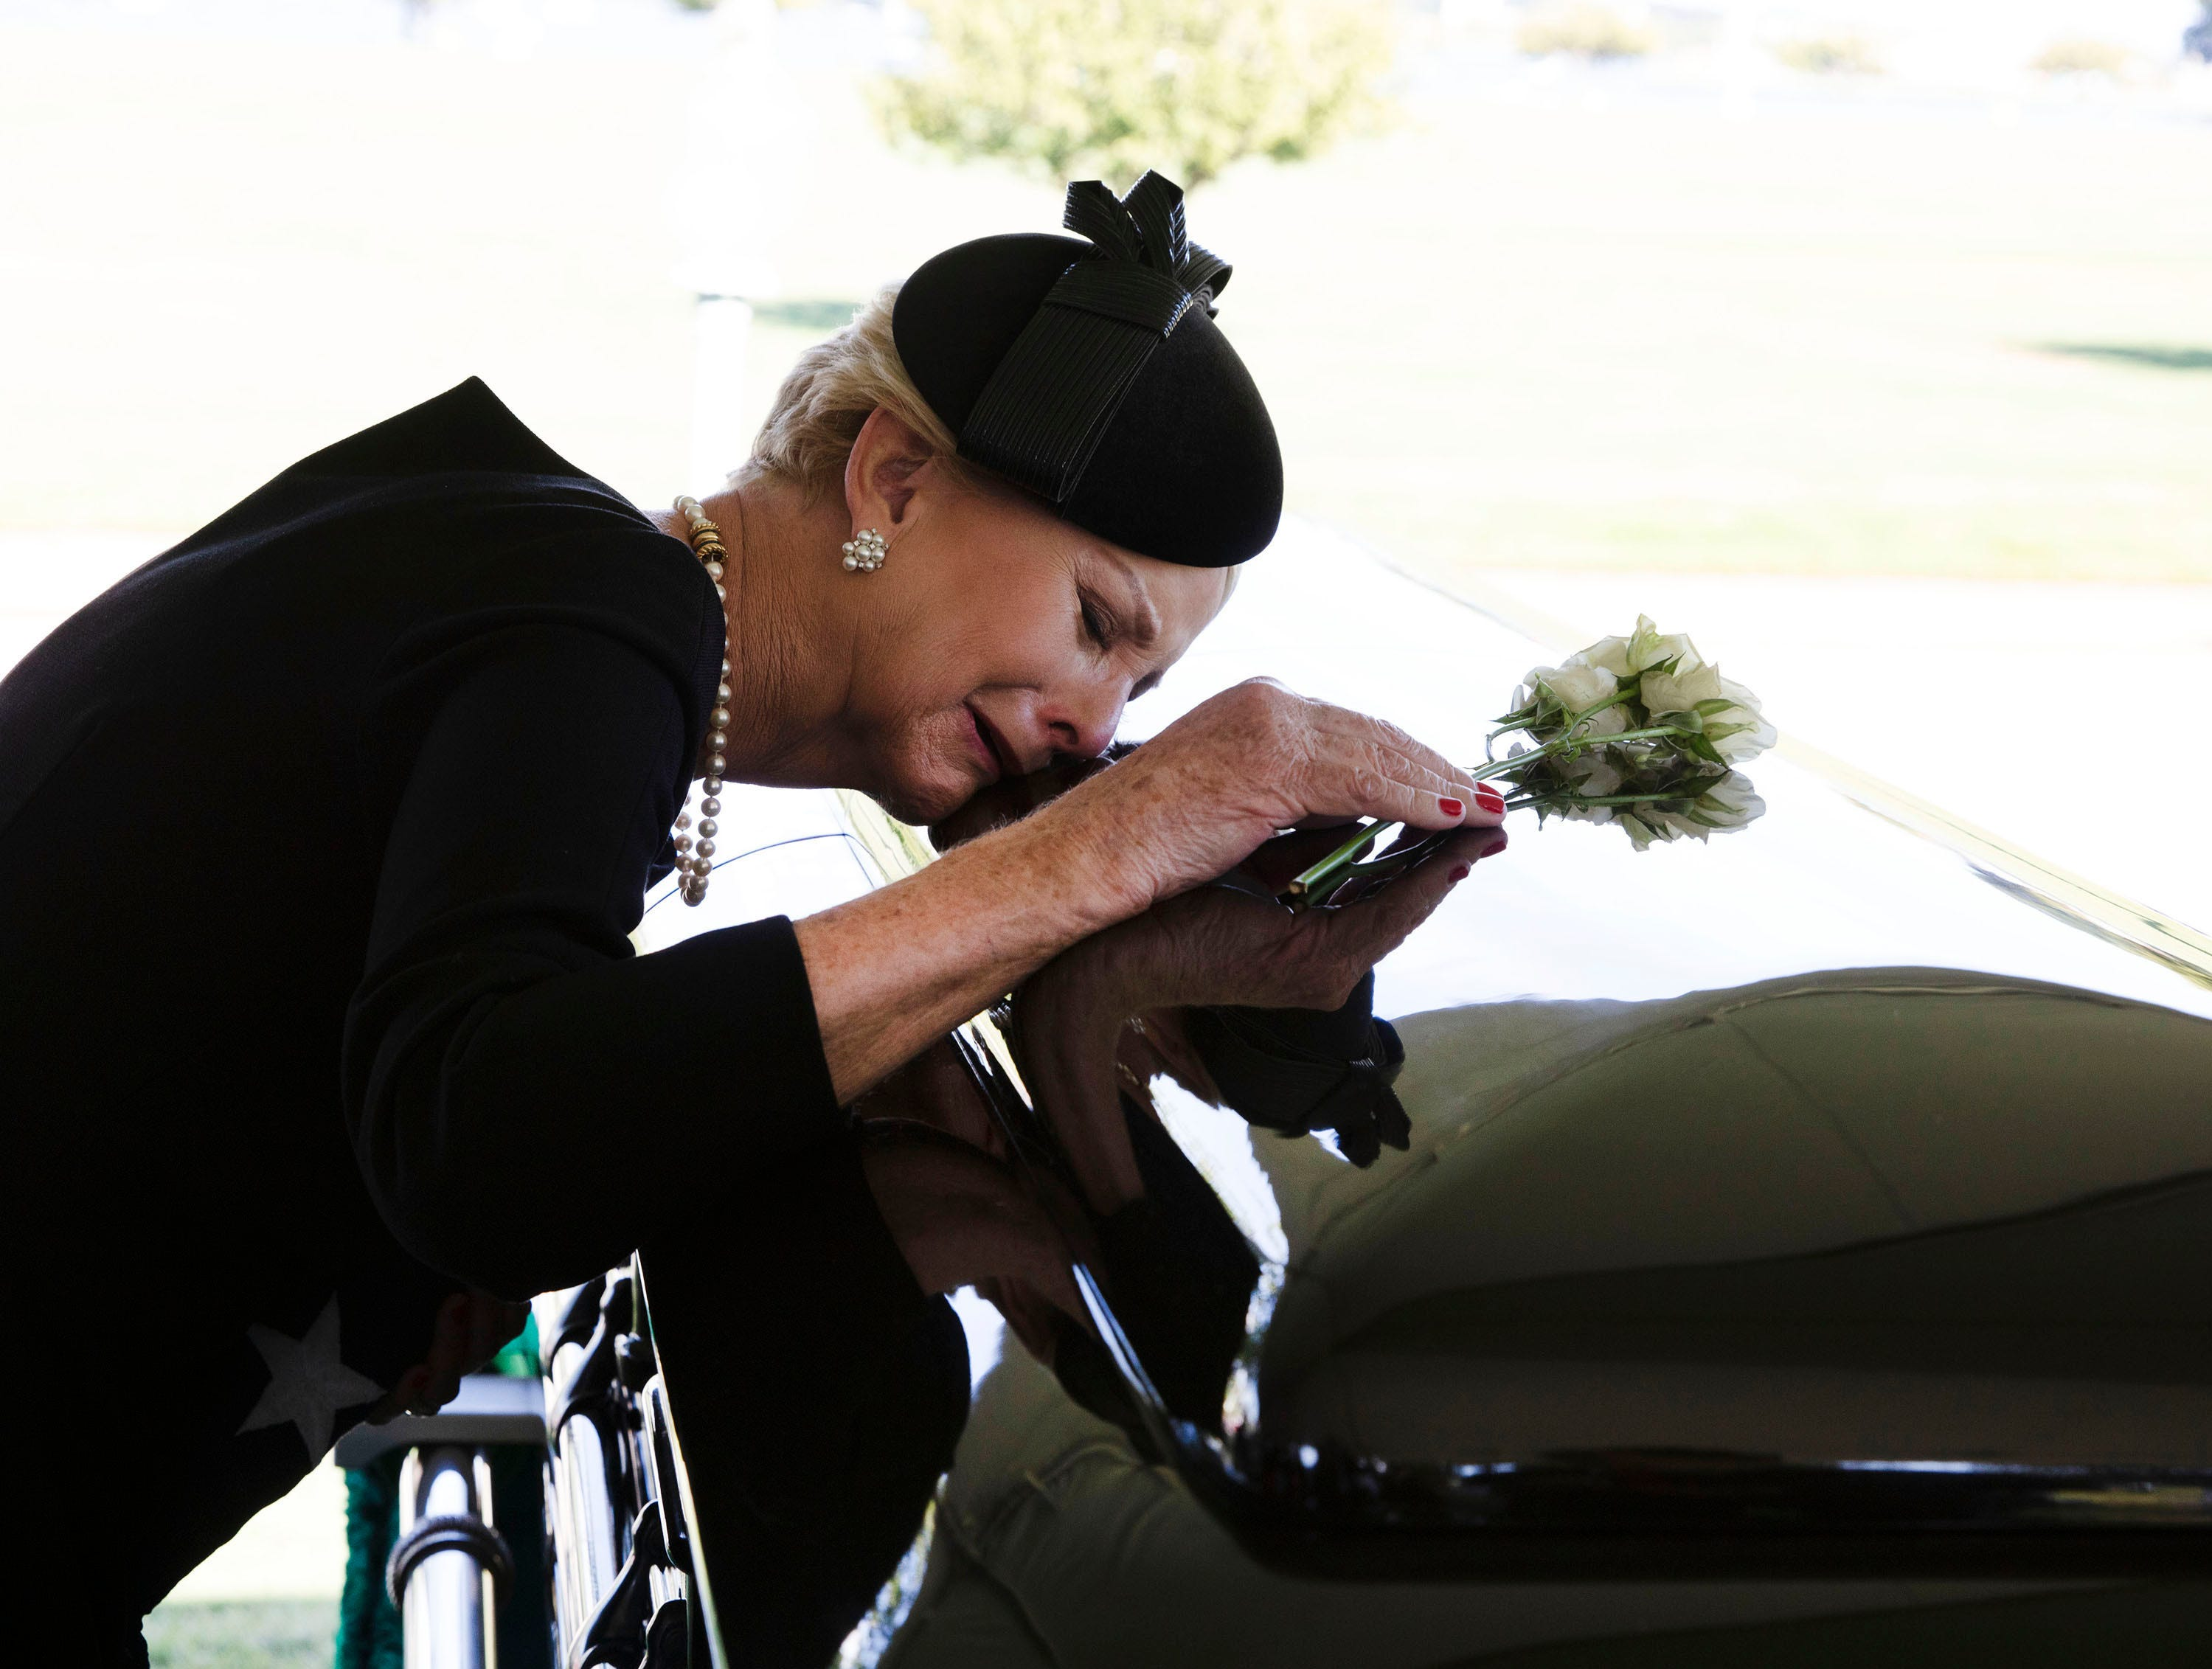 Cindy McCain lays her head on the casket of Sen. John McCain, R-Ariz., during a burial service at the cemetery at the United States Naval Academy in Annapolis, Md., on Sunday, Sept. 2, 2018.